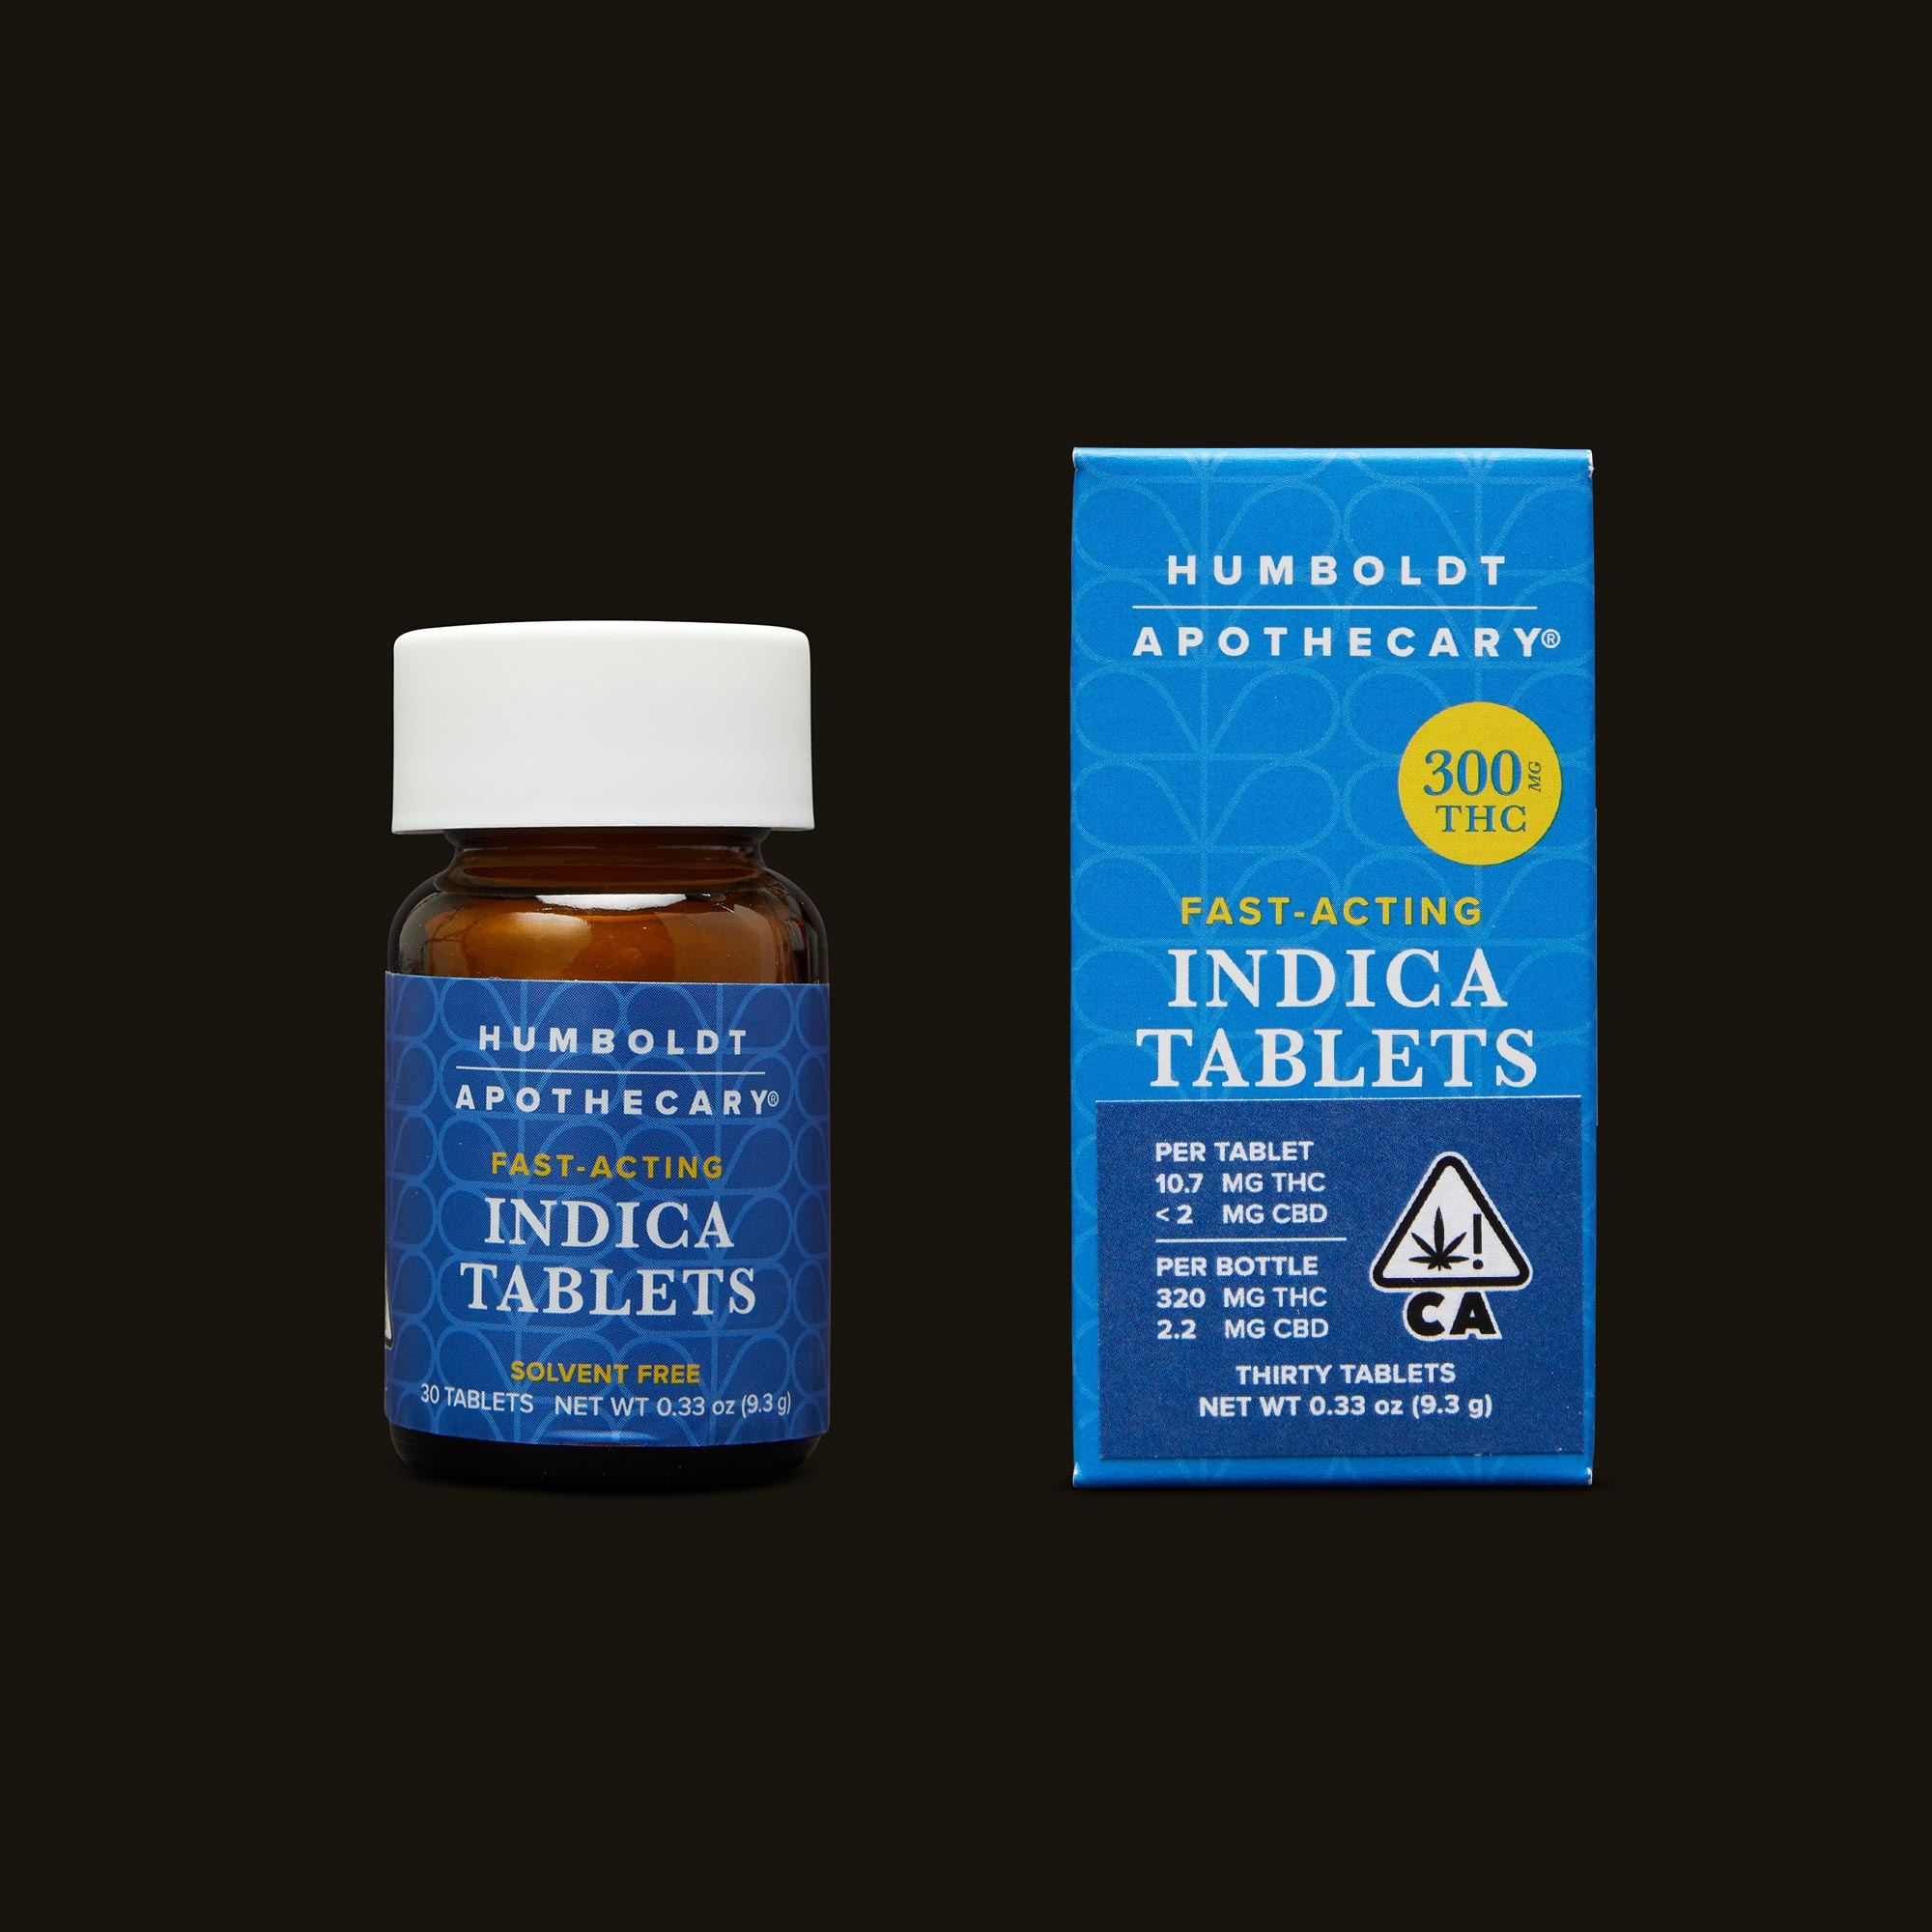 Humboldt Apothecary Indica Tablets Bottle and Packaging